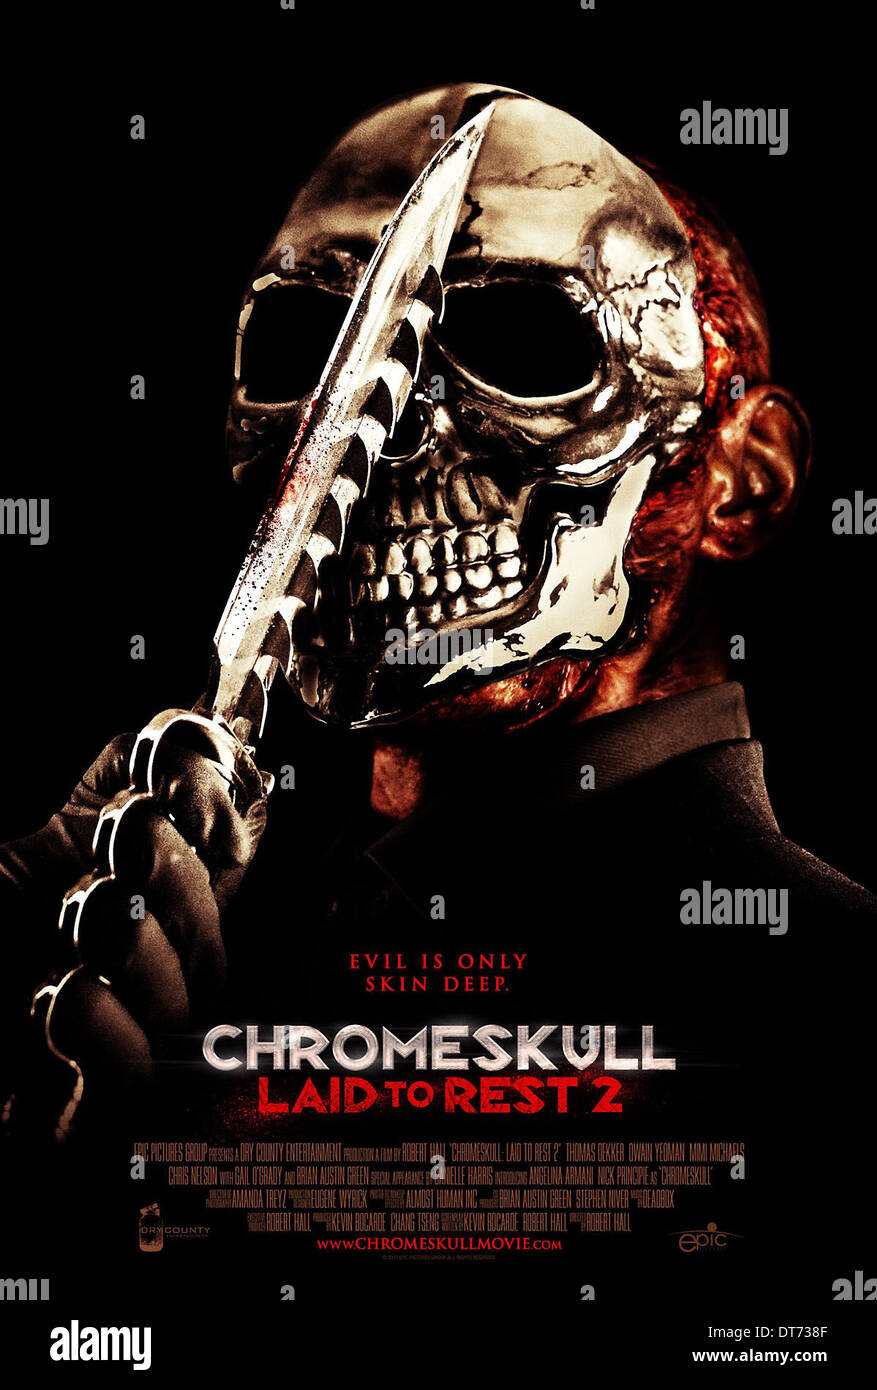 MOVIE POSTER CHROMESKULL: LAID TO REST 2 (2011) - Stock Image